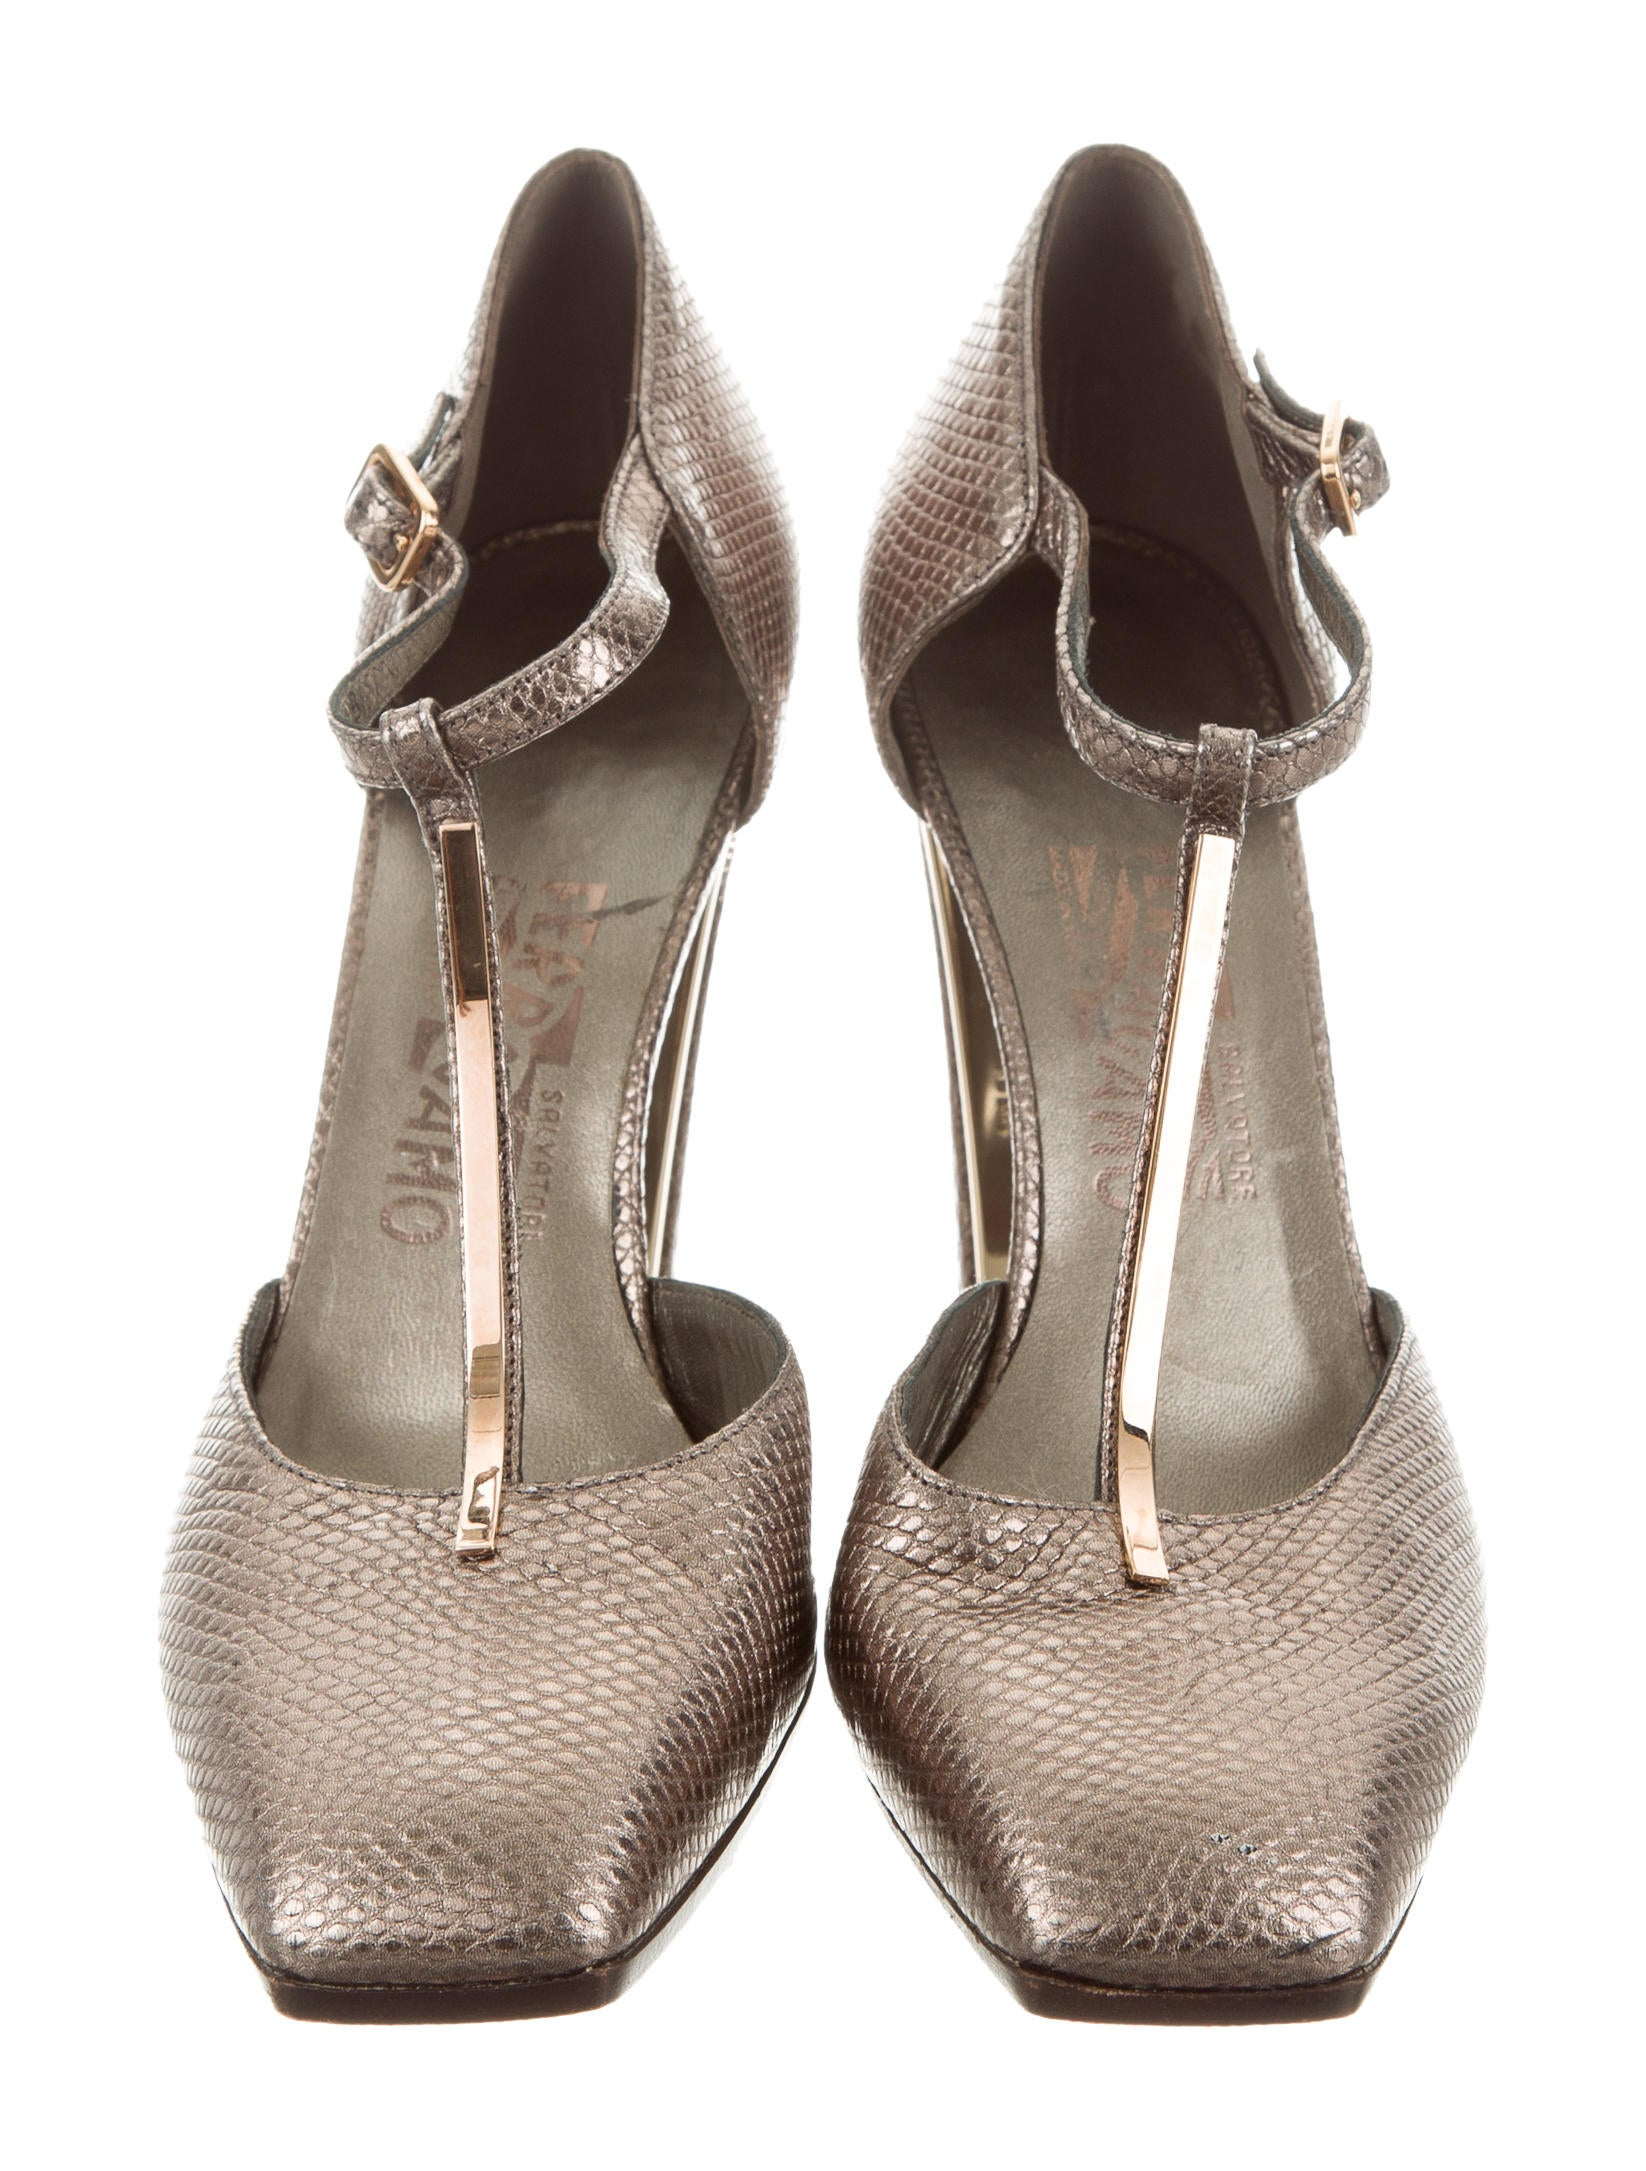 discount for cheap Salvatore Ferragamo Embossed Square-Toe Pumps Inexpensive cheap price cheap pre order Bkmp2M3